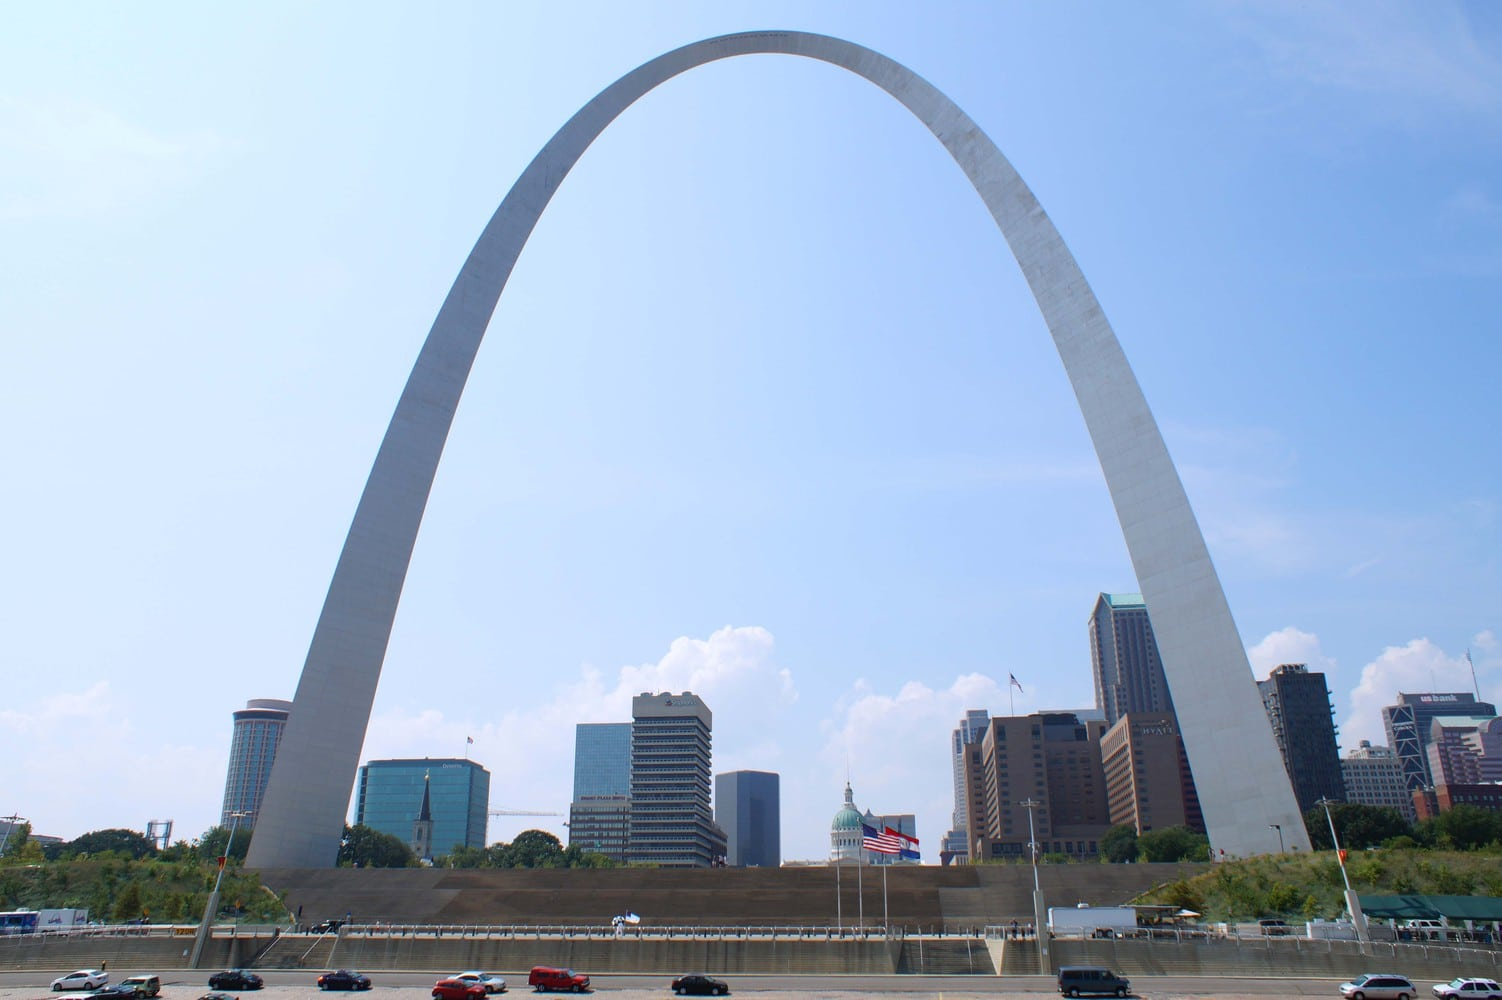 Gateway Arch as seen from a river boat